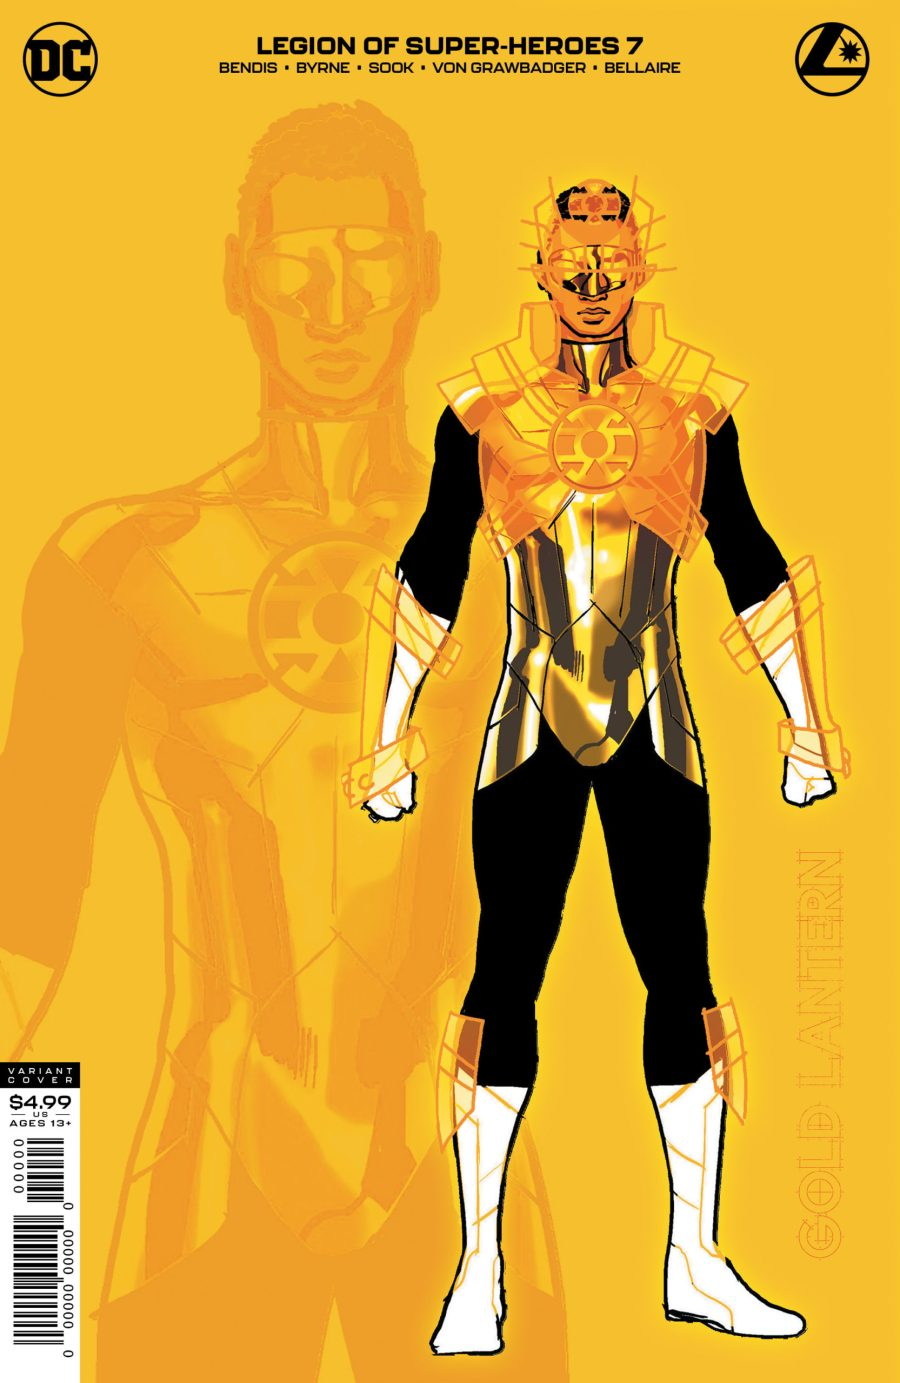 The Gold Lantern shines in new Legion of Super-Heroes variant ...